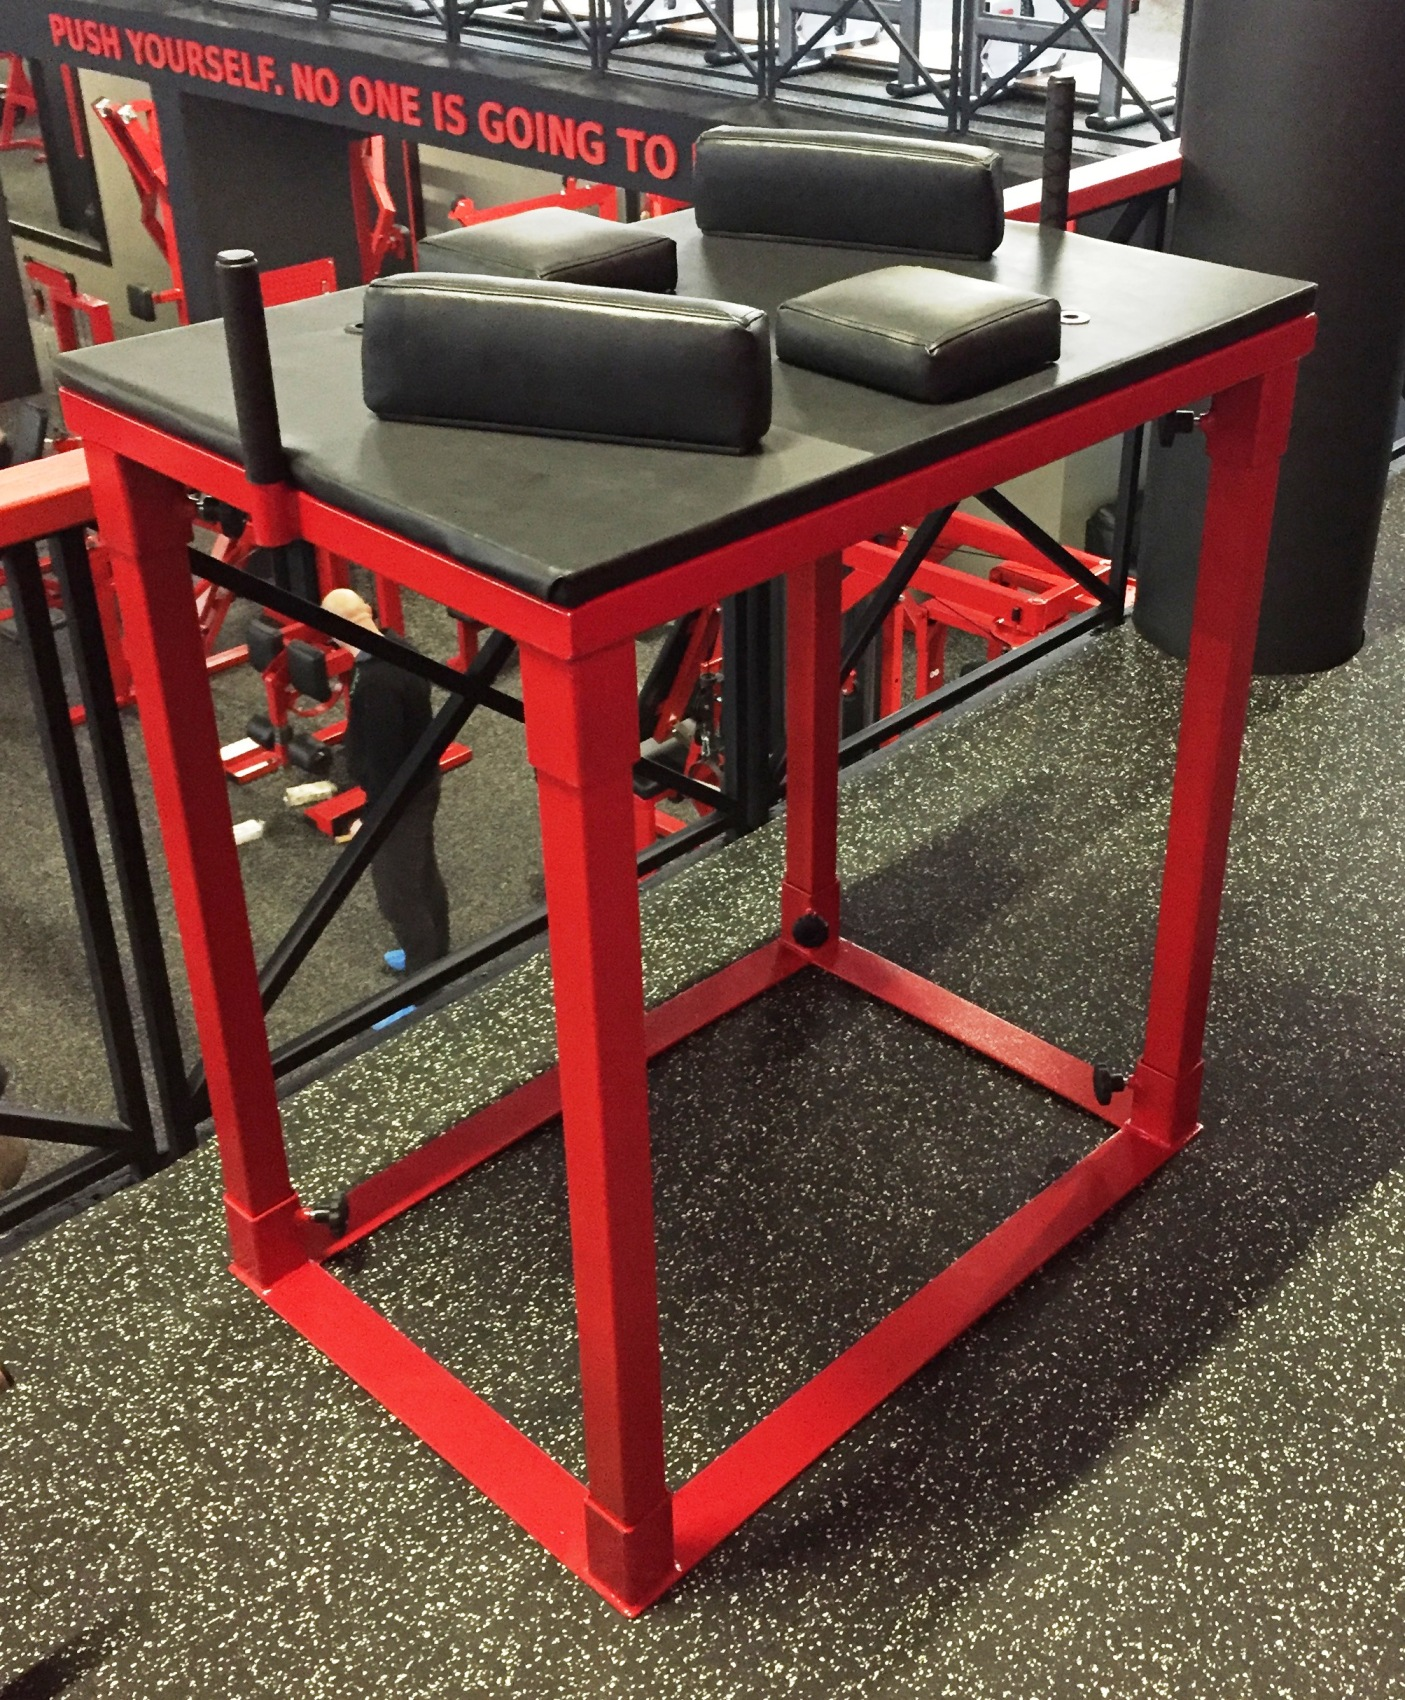 armwrestling table gymequip eu professional gym equipment rh gymequip eu arm wrestling table amazon arm wrestling table for sale ebay